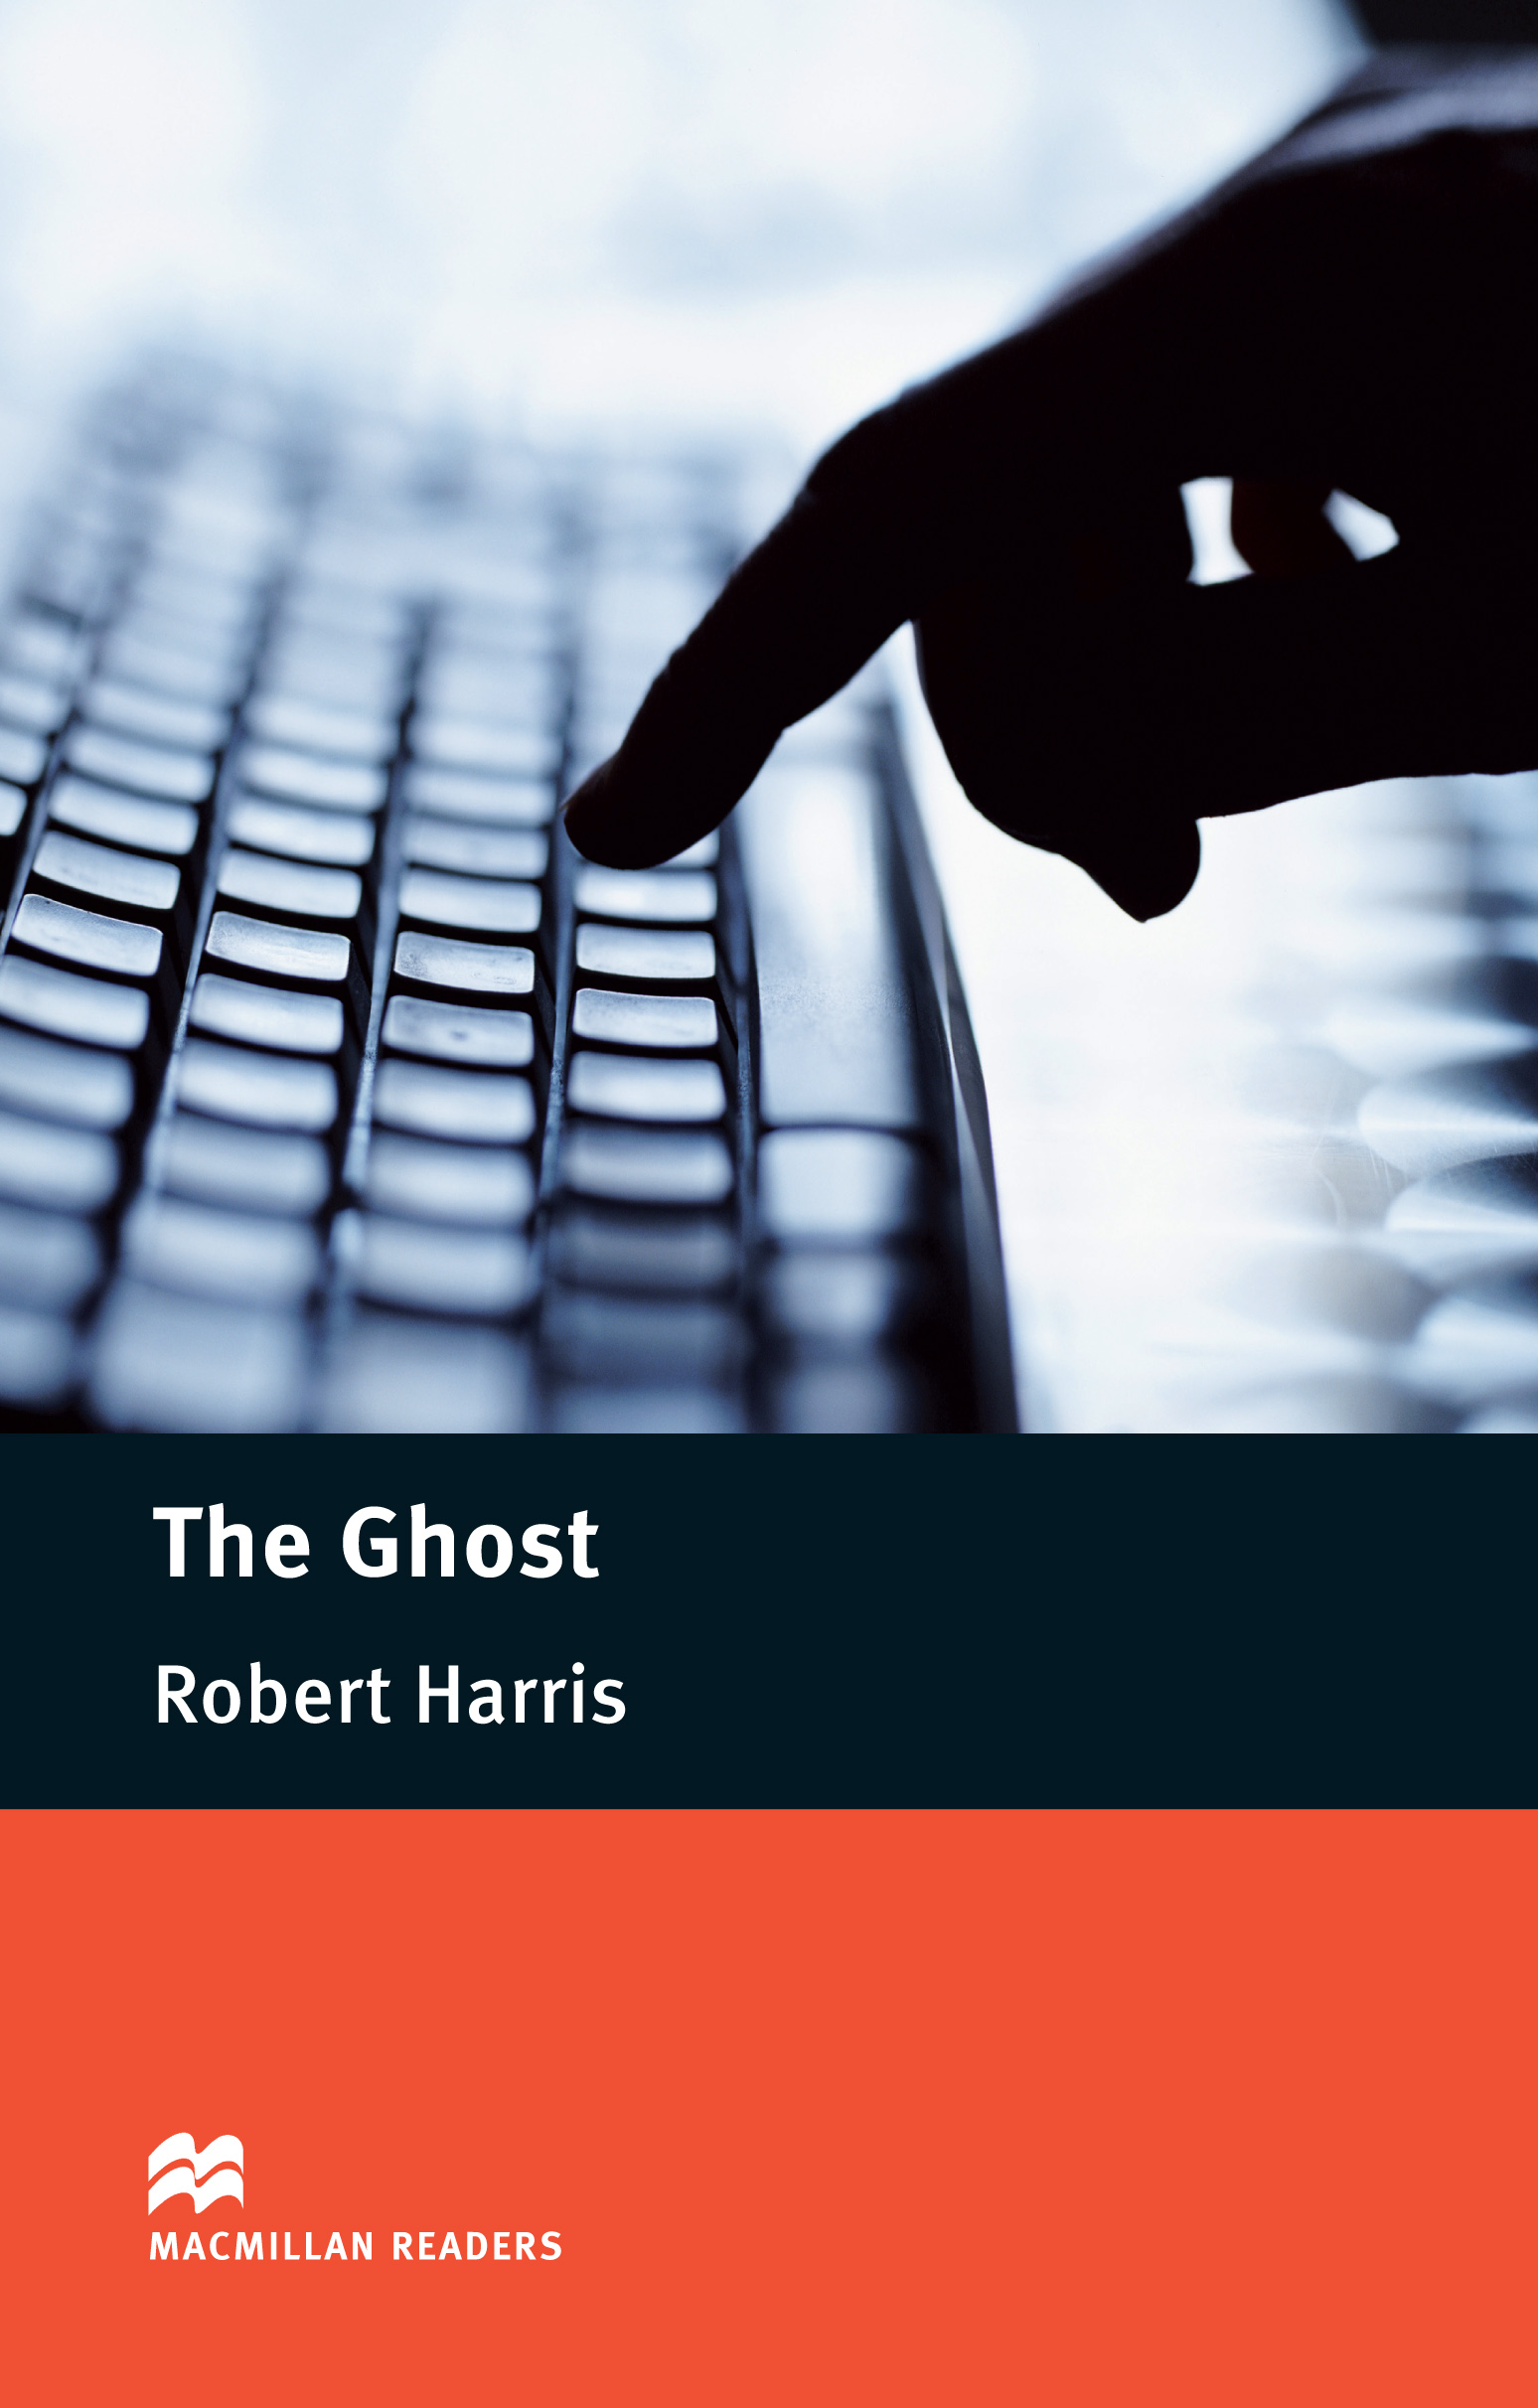 Macmillan Readers: The Ghost without CD